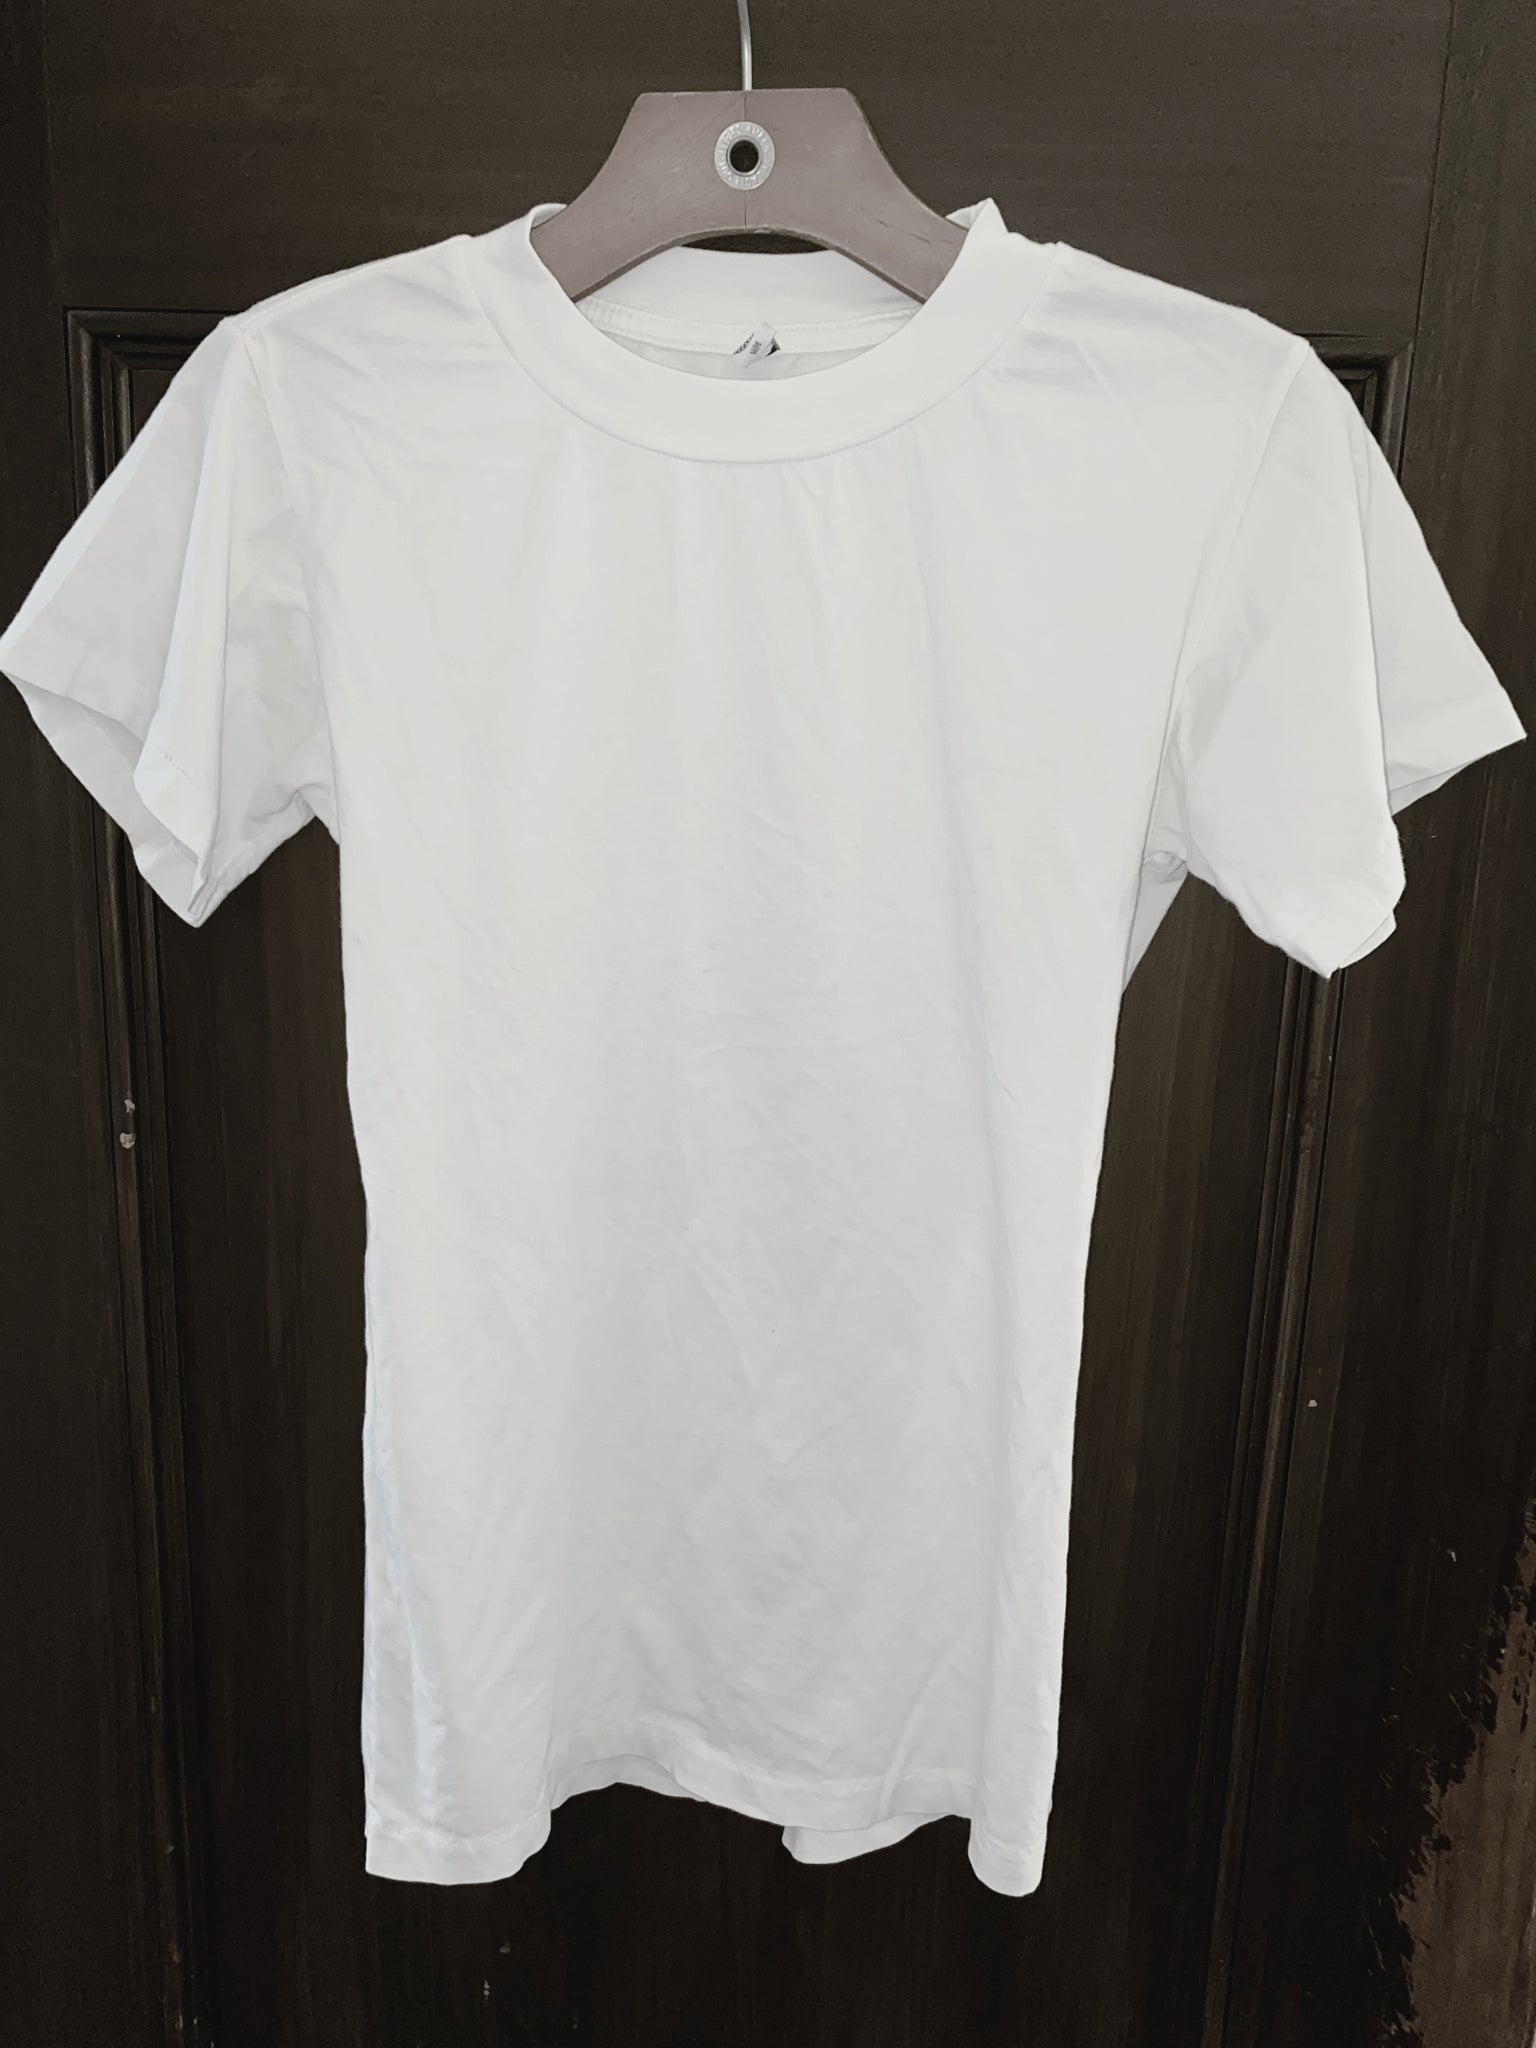 WORLD FAMOUS BOOGEYMAN WHITE T-SHIRT